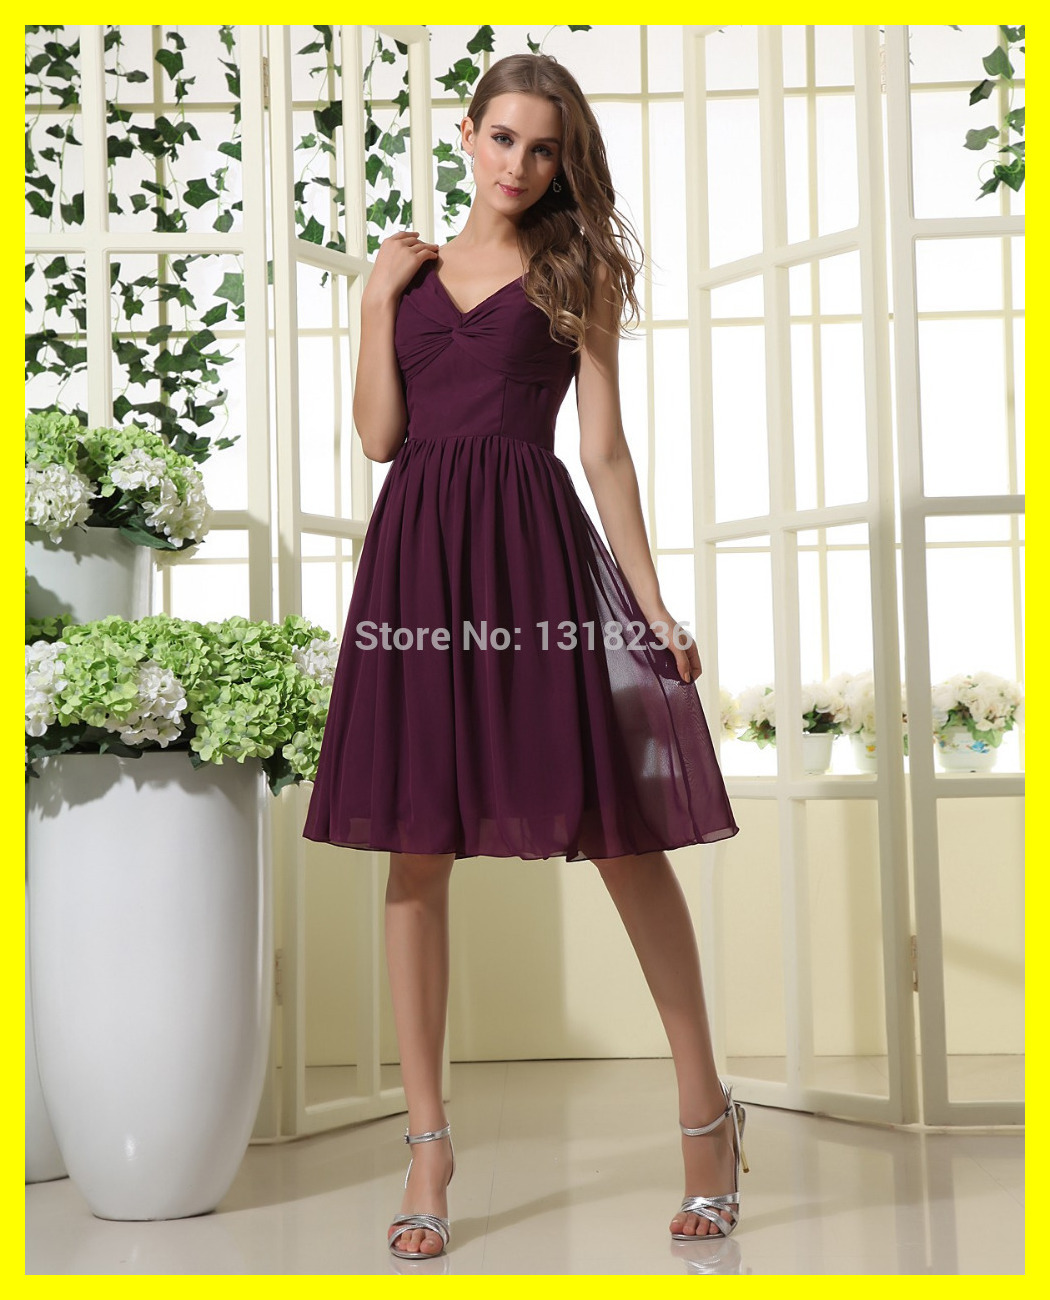 Maternity bridesmaid dress hire uk list of wedding dresses maternity bridesmaid dress hire uk 103 ombrellifo Images